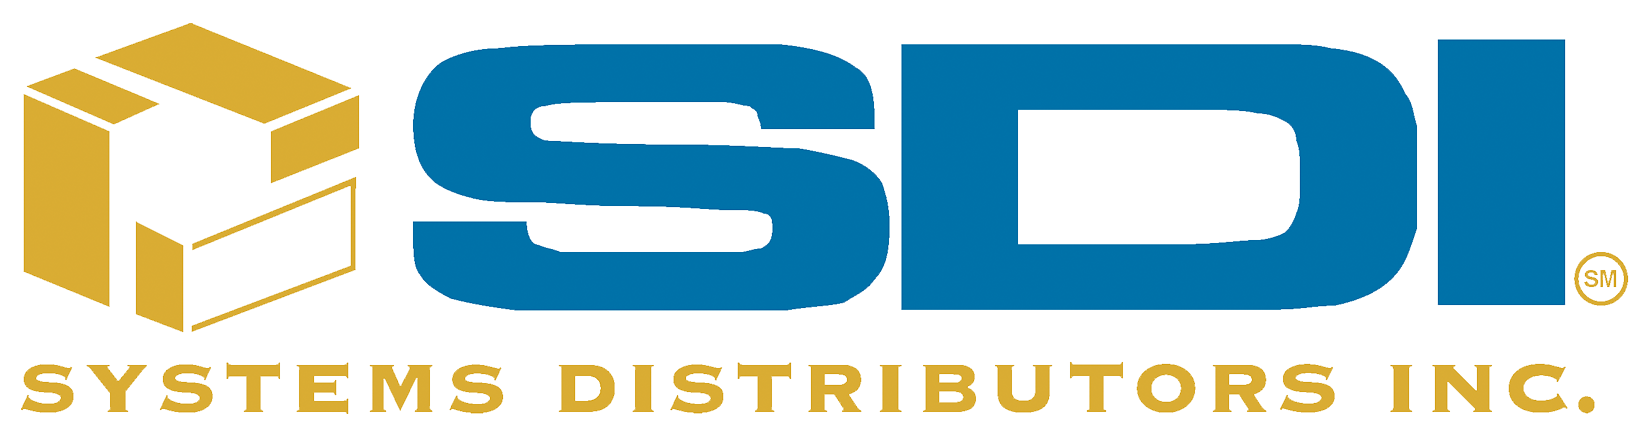 Systems Distributors Inc.